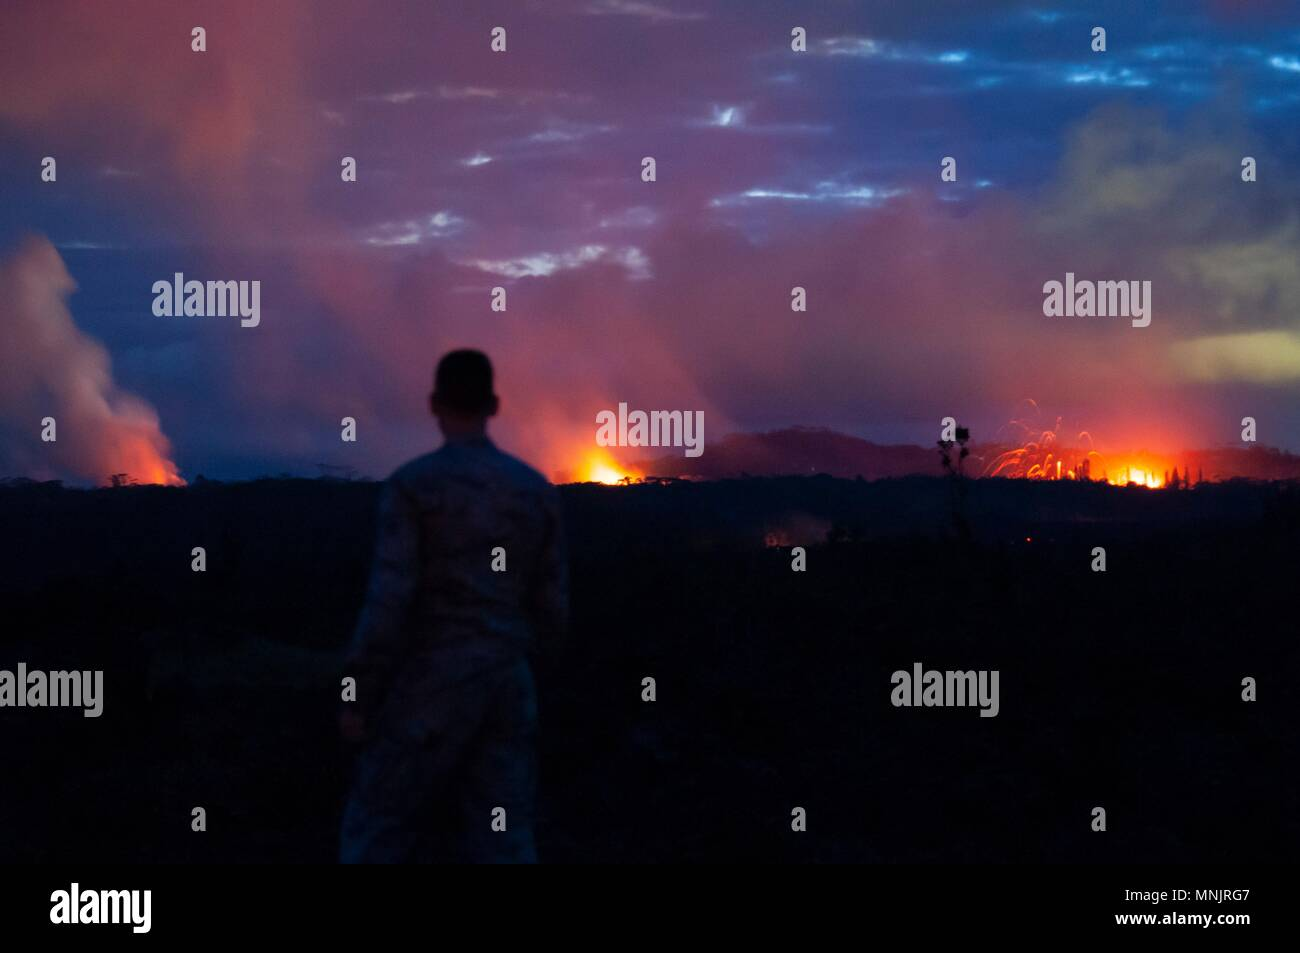 A Hawaii Air National Guard Airman observes three volcanic fissures spewing lava and poison gas into the evening sky from the eruption of the Kilauea volcano May 15, 2018 in Pahoa, Hawaii. The recent eruption continues destroying homes, forcing evacuations and spewing lava and poison gas on the Big Island of Hawaii. - Stock Image